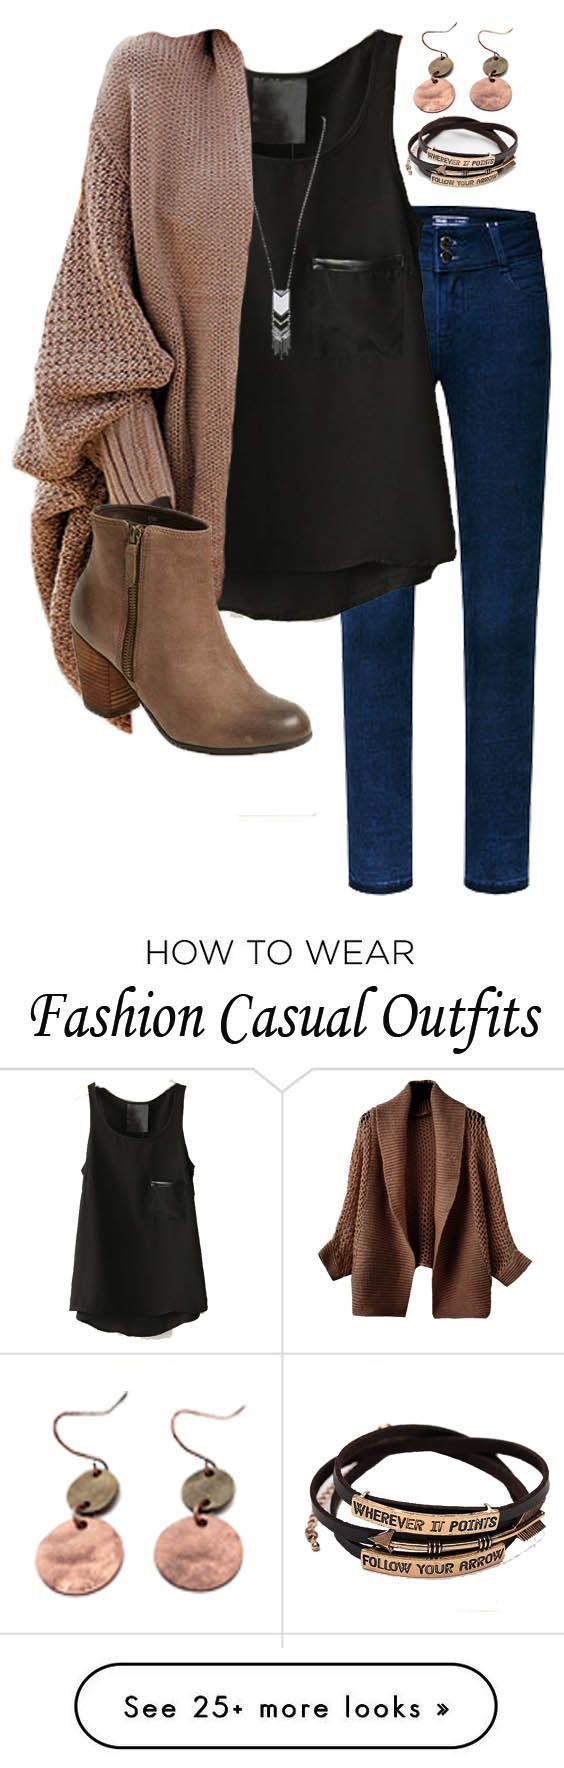 Astounding 50+ Best Fall Outfit For Women https://www.fashiotopia.com/2017/06/14/50-best-fall-outfit-women/ Accessorize with good jewelry to boost the dress that you select. Empire waist dresses work nicely for women that are petite. Skirts have always been part of casual styles for ladies, although in various patterns and colours.